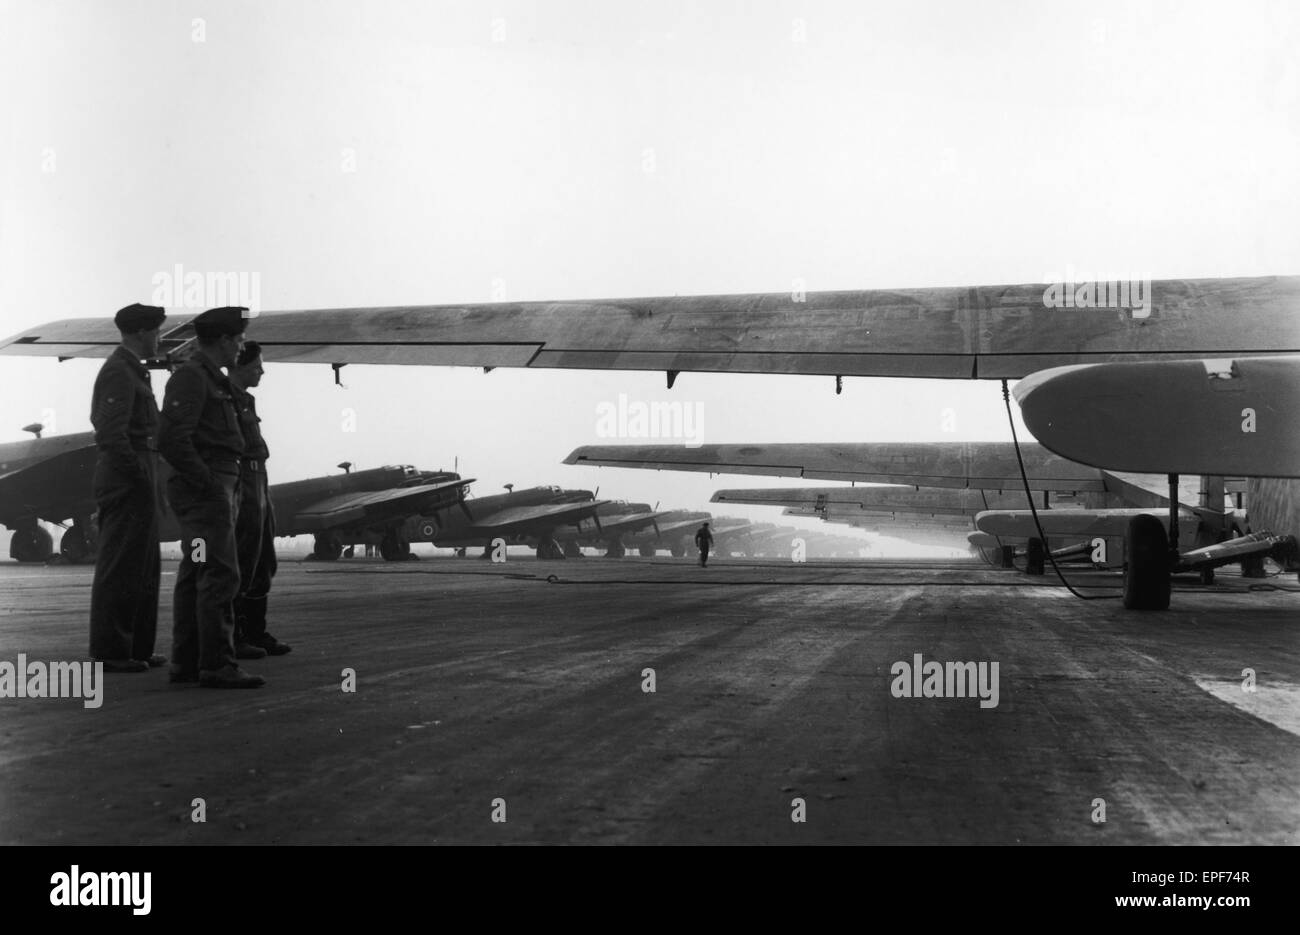 An Avenue of Hamilear gliders and RAF Halifax towing aircraft ready for take off. 24th March 1945 - Stock Image